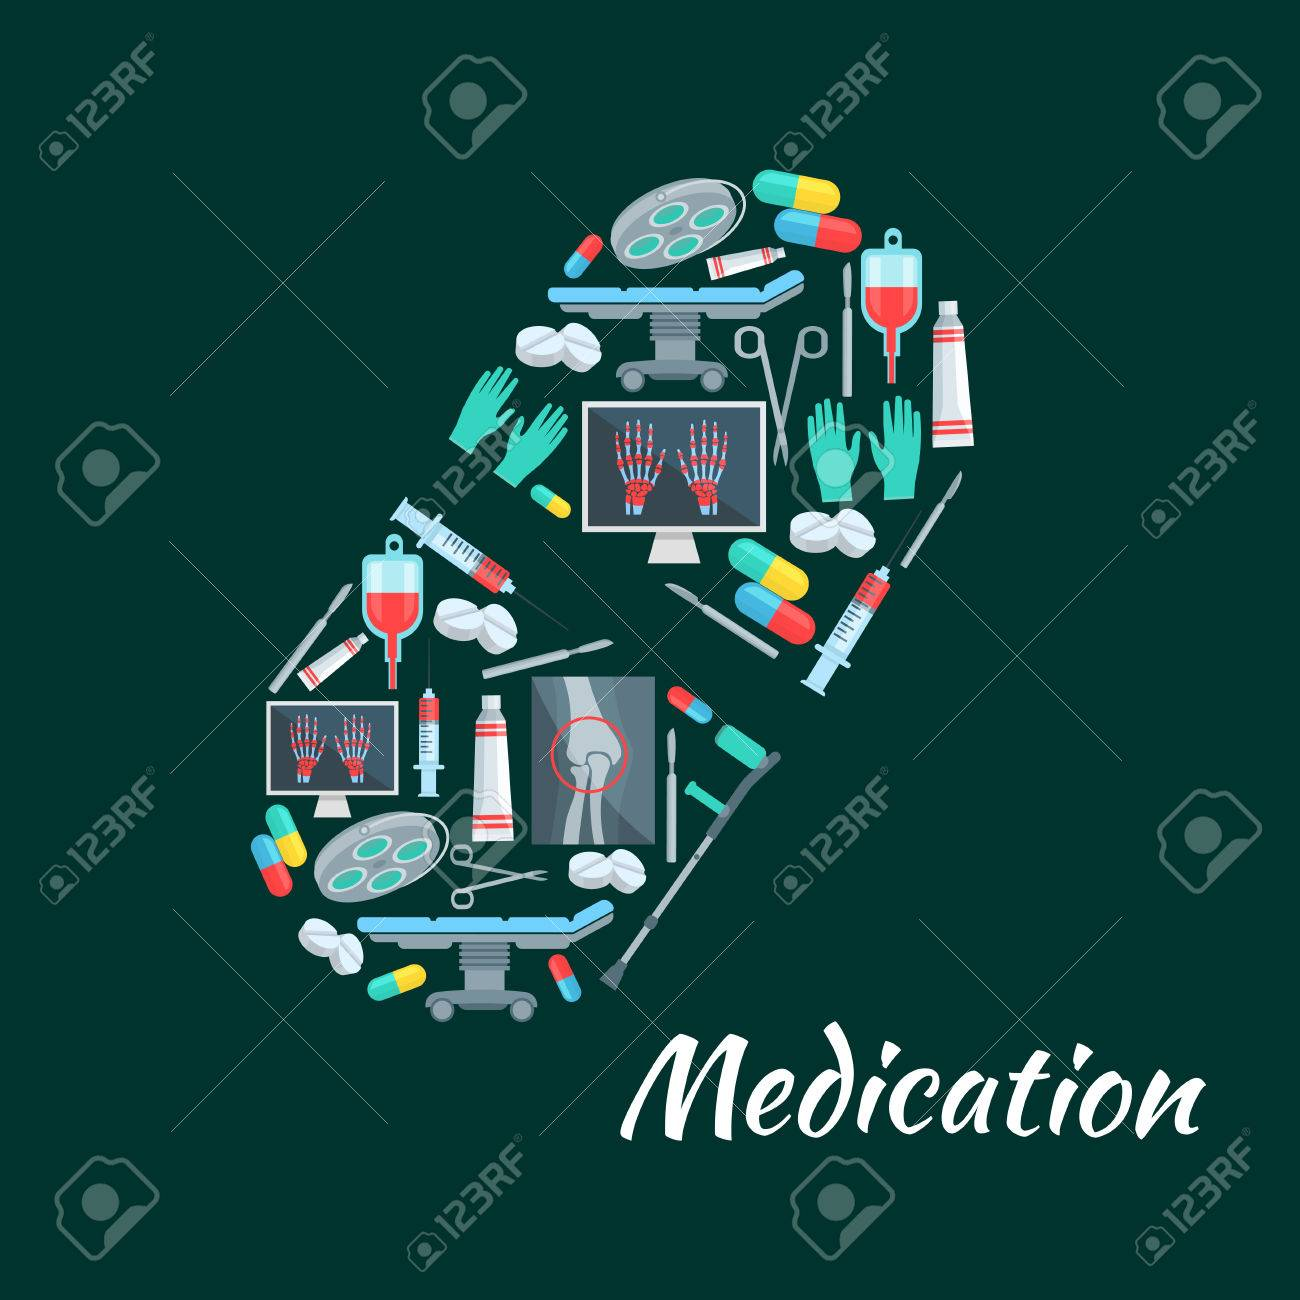 X ray poster design - Medication Poster Of Pill Symbol And Medicine Tools Vector Healthcare Therapy Pills Syringe And